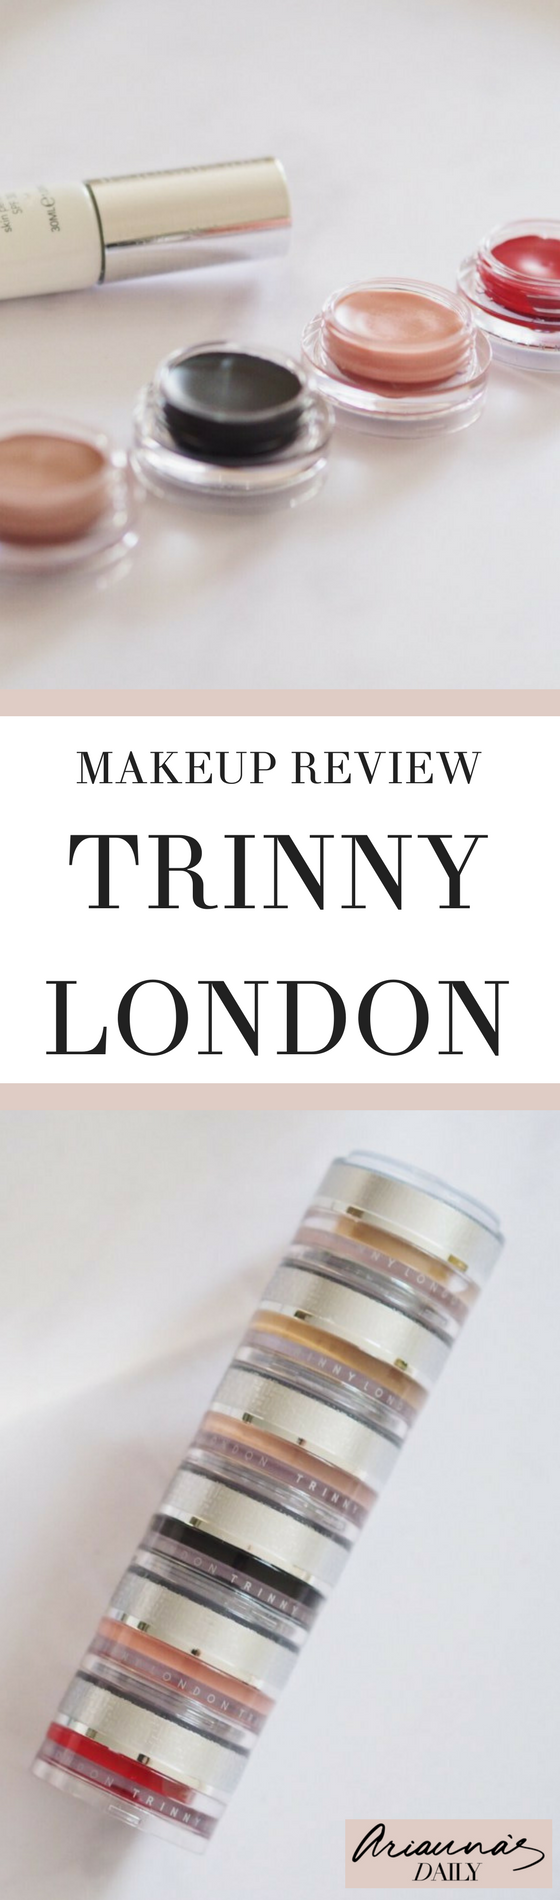 Trinny London A New Makeup Brand To Love Makeup reviews